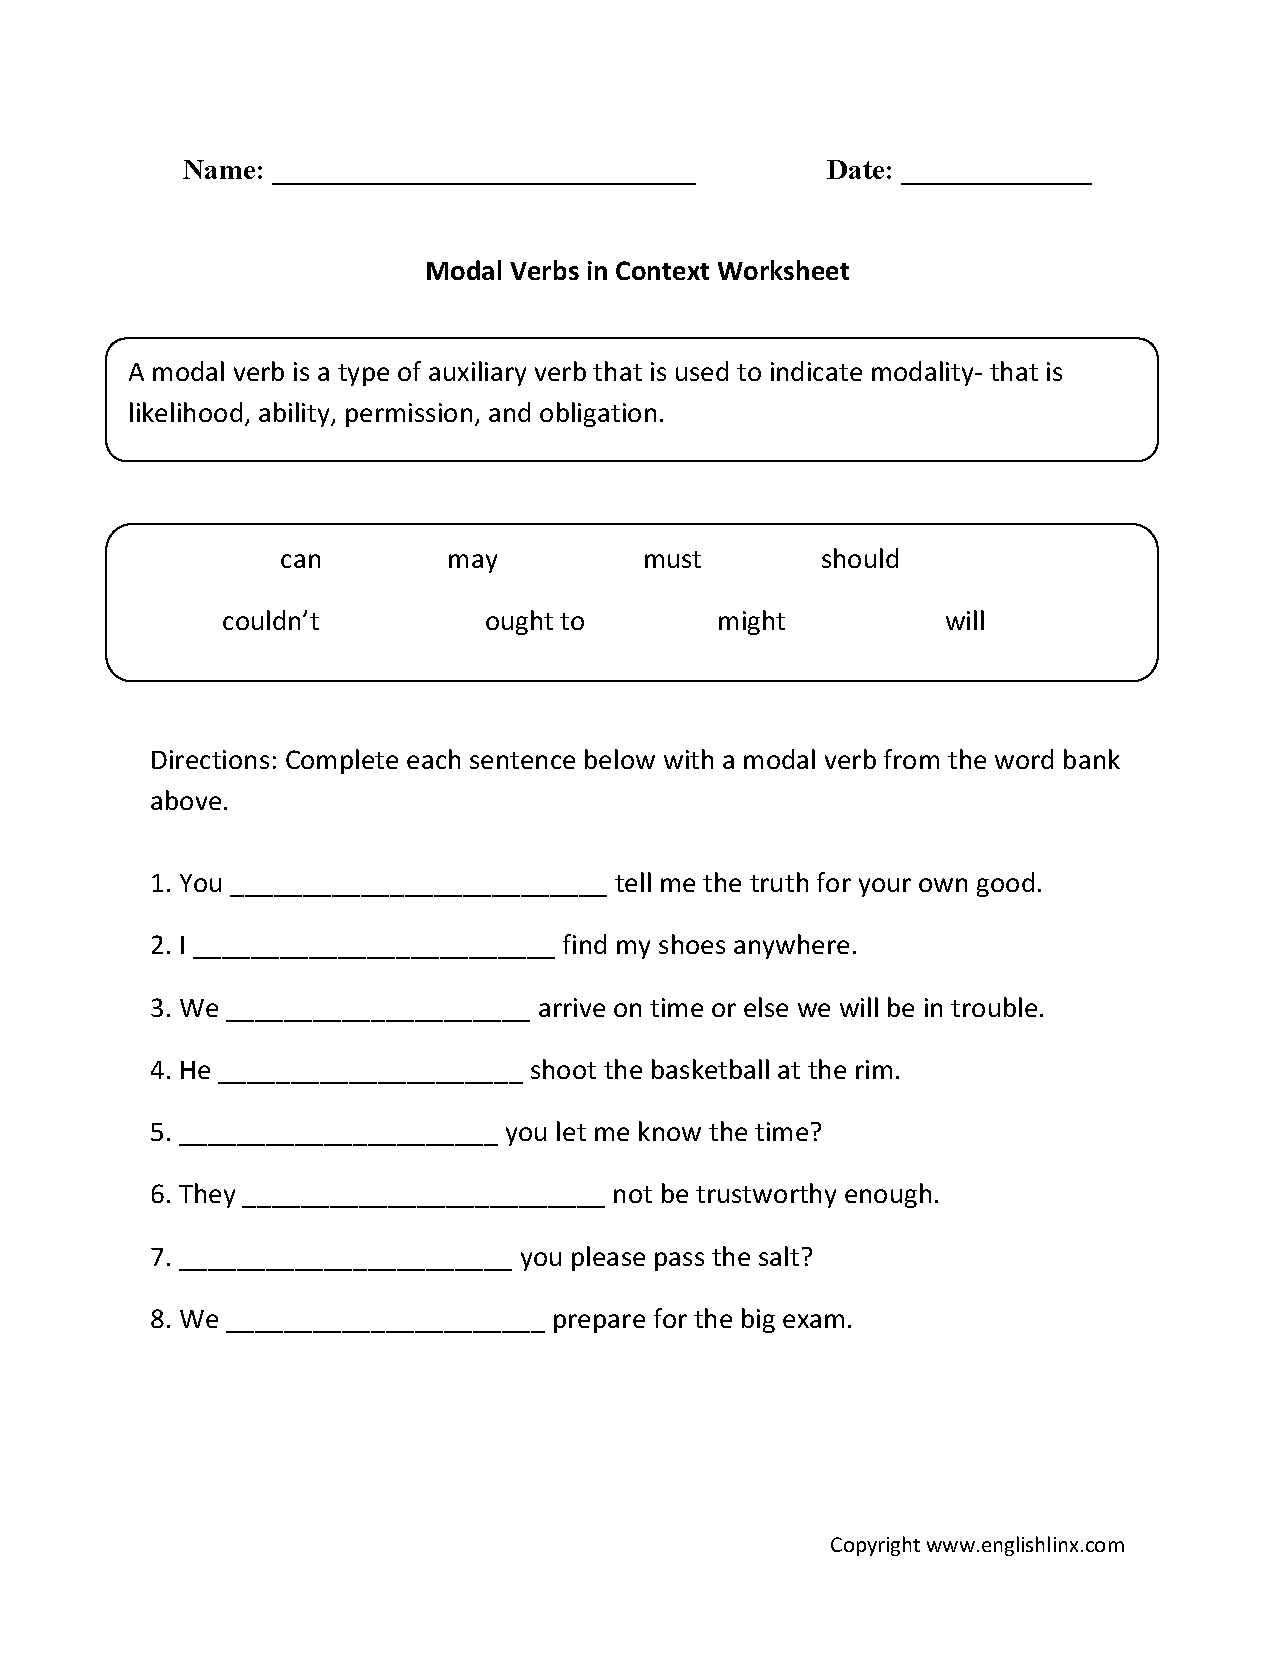 Aldiablosus  Marvelous Worksheet For Verbs  Coffemix With Fair Englishlinxcom  Verbs Worksheets With Lovely Common And Proper Nouns Worksheet Rd Grade Also Line Design Worksheets In Addition Kindergarten Math Review Worksheets And Pronouns Worksheets Th Grade As Well As Decimals Worksheets Grade  Additionally Finding Patterns Worksheet From Coffemixcom With Aldiablosus  Fair Worksheet For Verbs  Coffemix With Lovely Englishlinxcom  Verbs Worksheets And Marvelous Common And Proper Nouns Worksheet Rd Grade Also Line Design Worksheets In Addition Kindergarten Math Review Worksheets From Coffemixcom